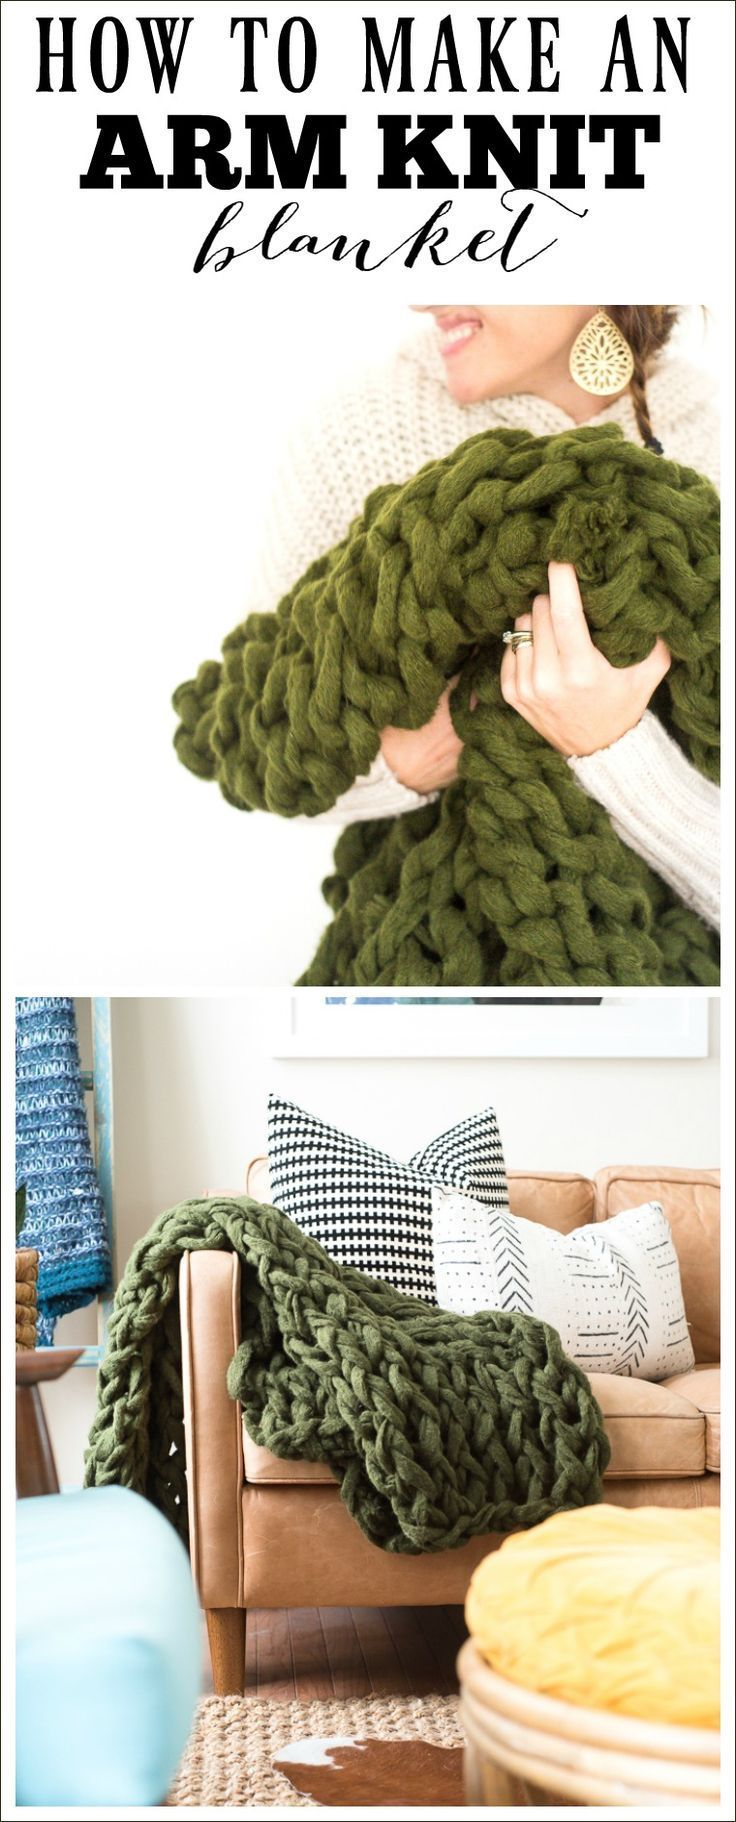 DIY Craft: Learn how to make an arm knit blanket! Easy tutorial of a basic arm knit blanket. This cozy arm knit blanket will be a great addition to any home!